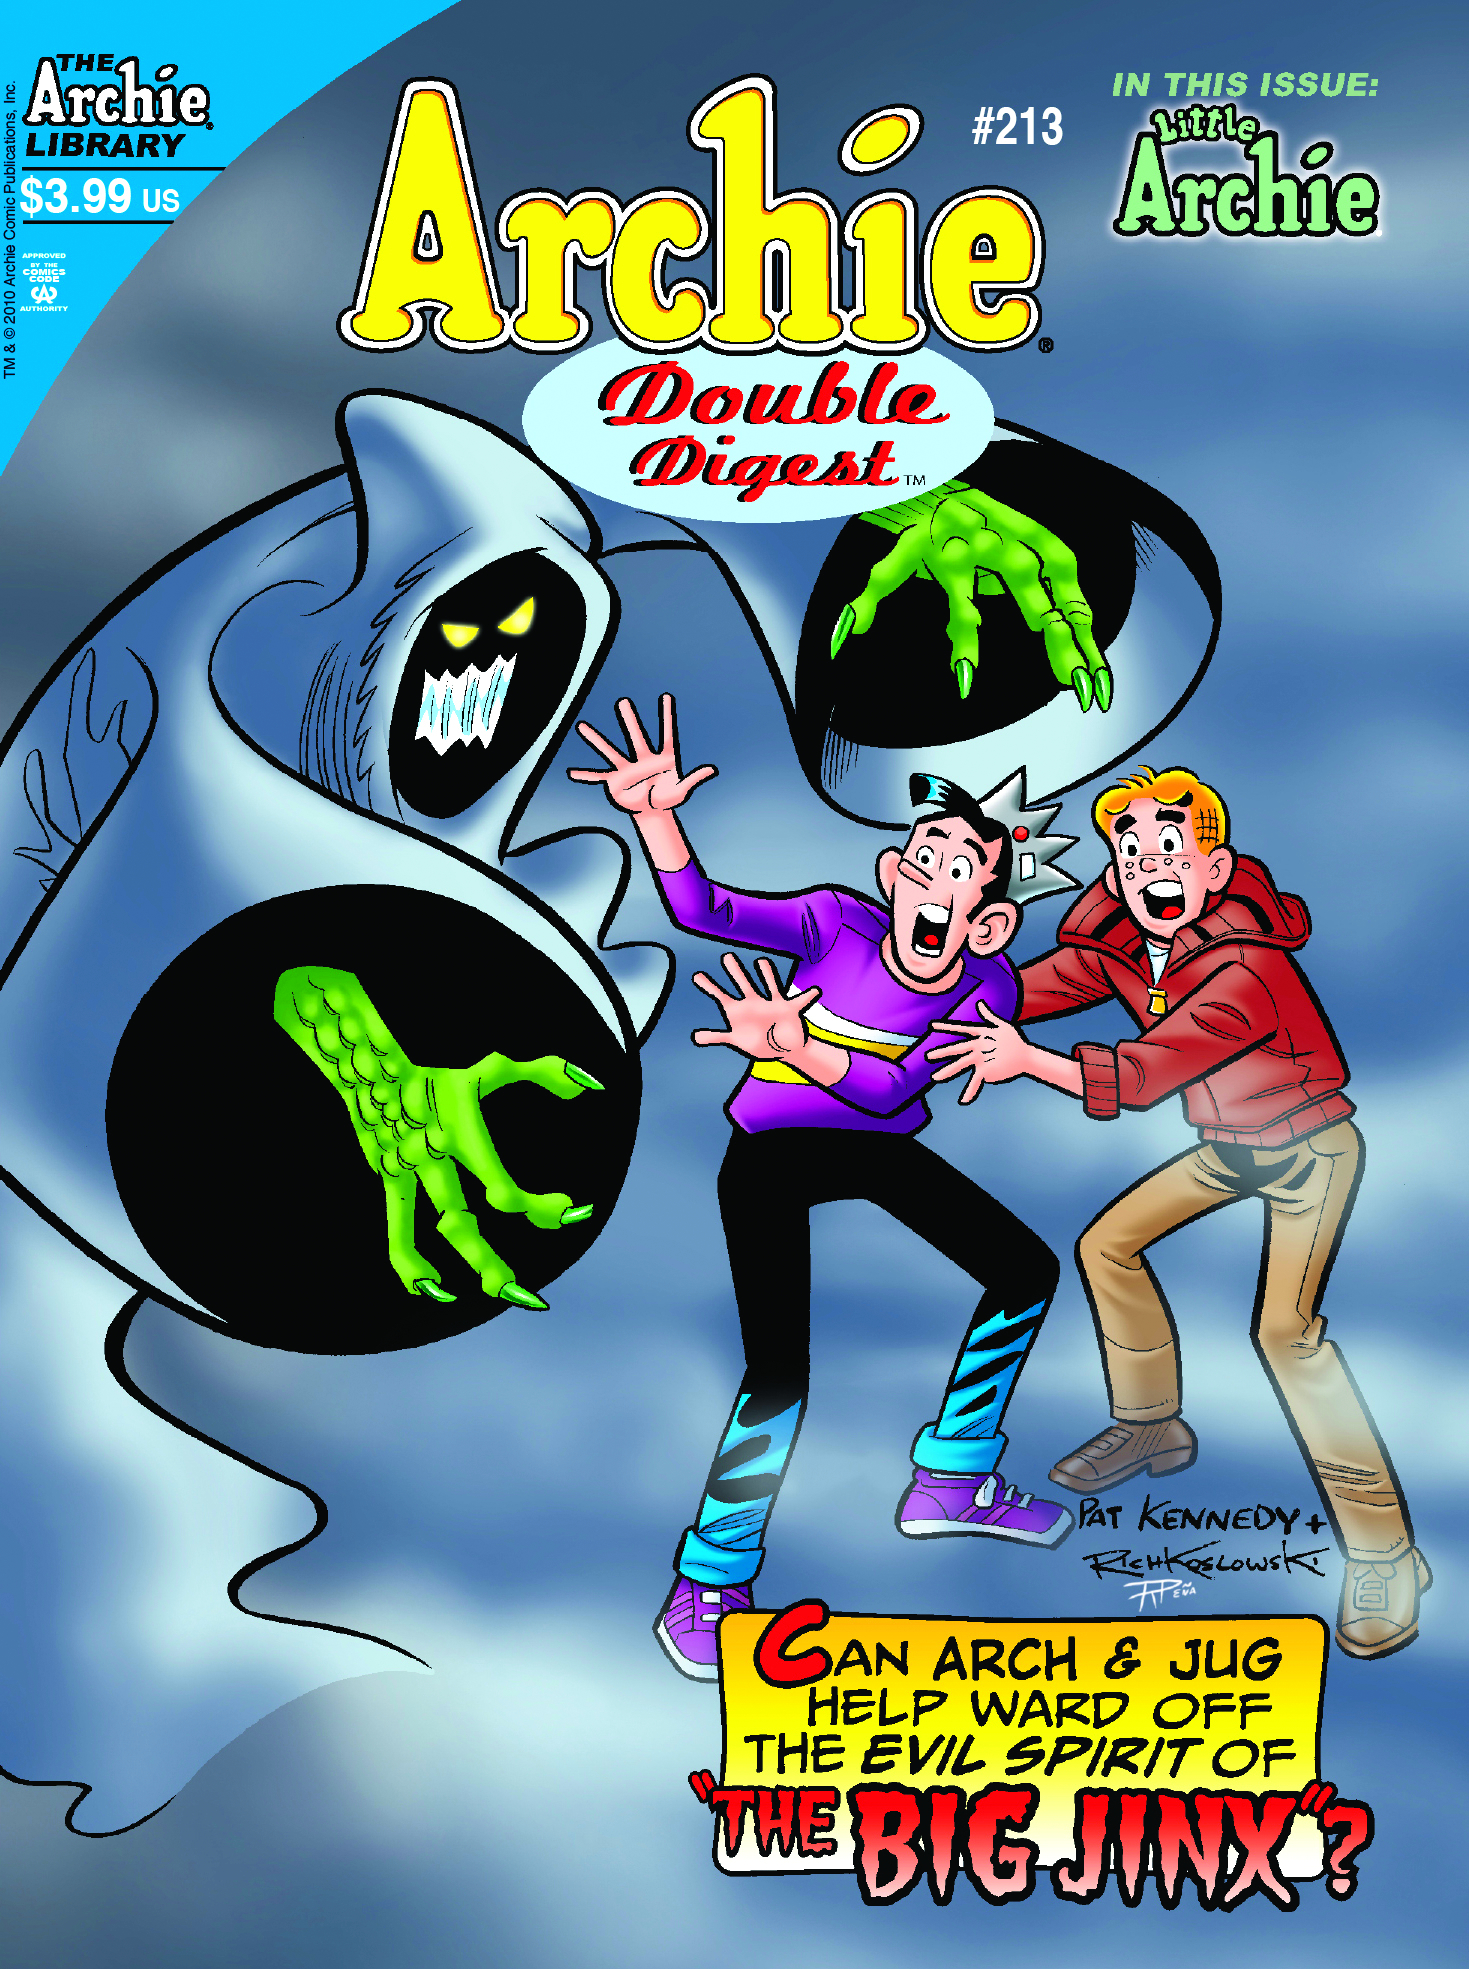 ARCHIE DOUBLE DIGEST #213